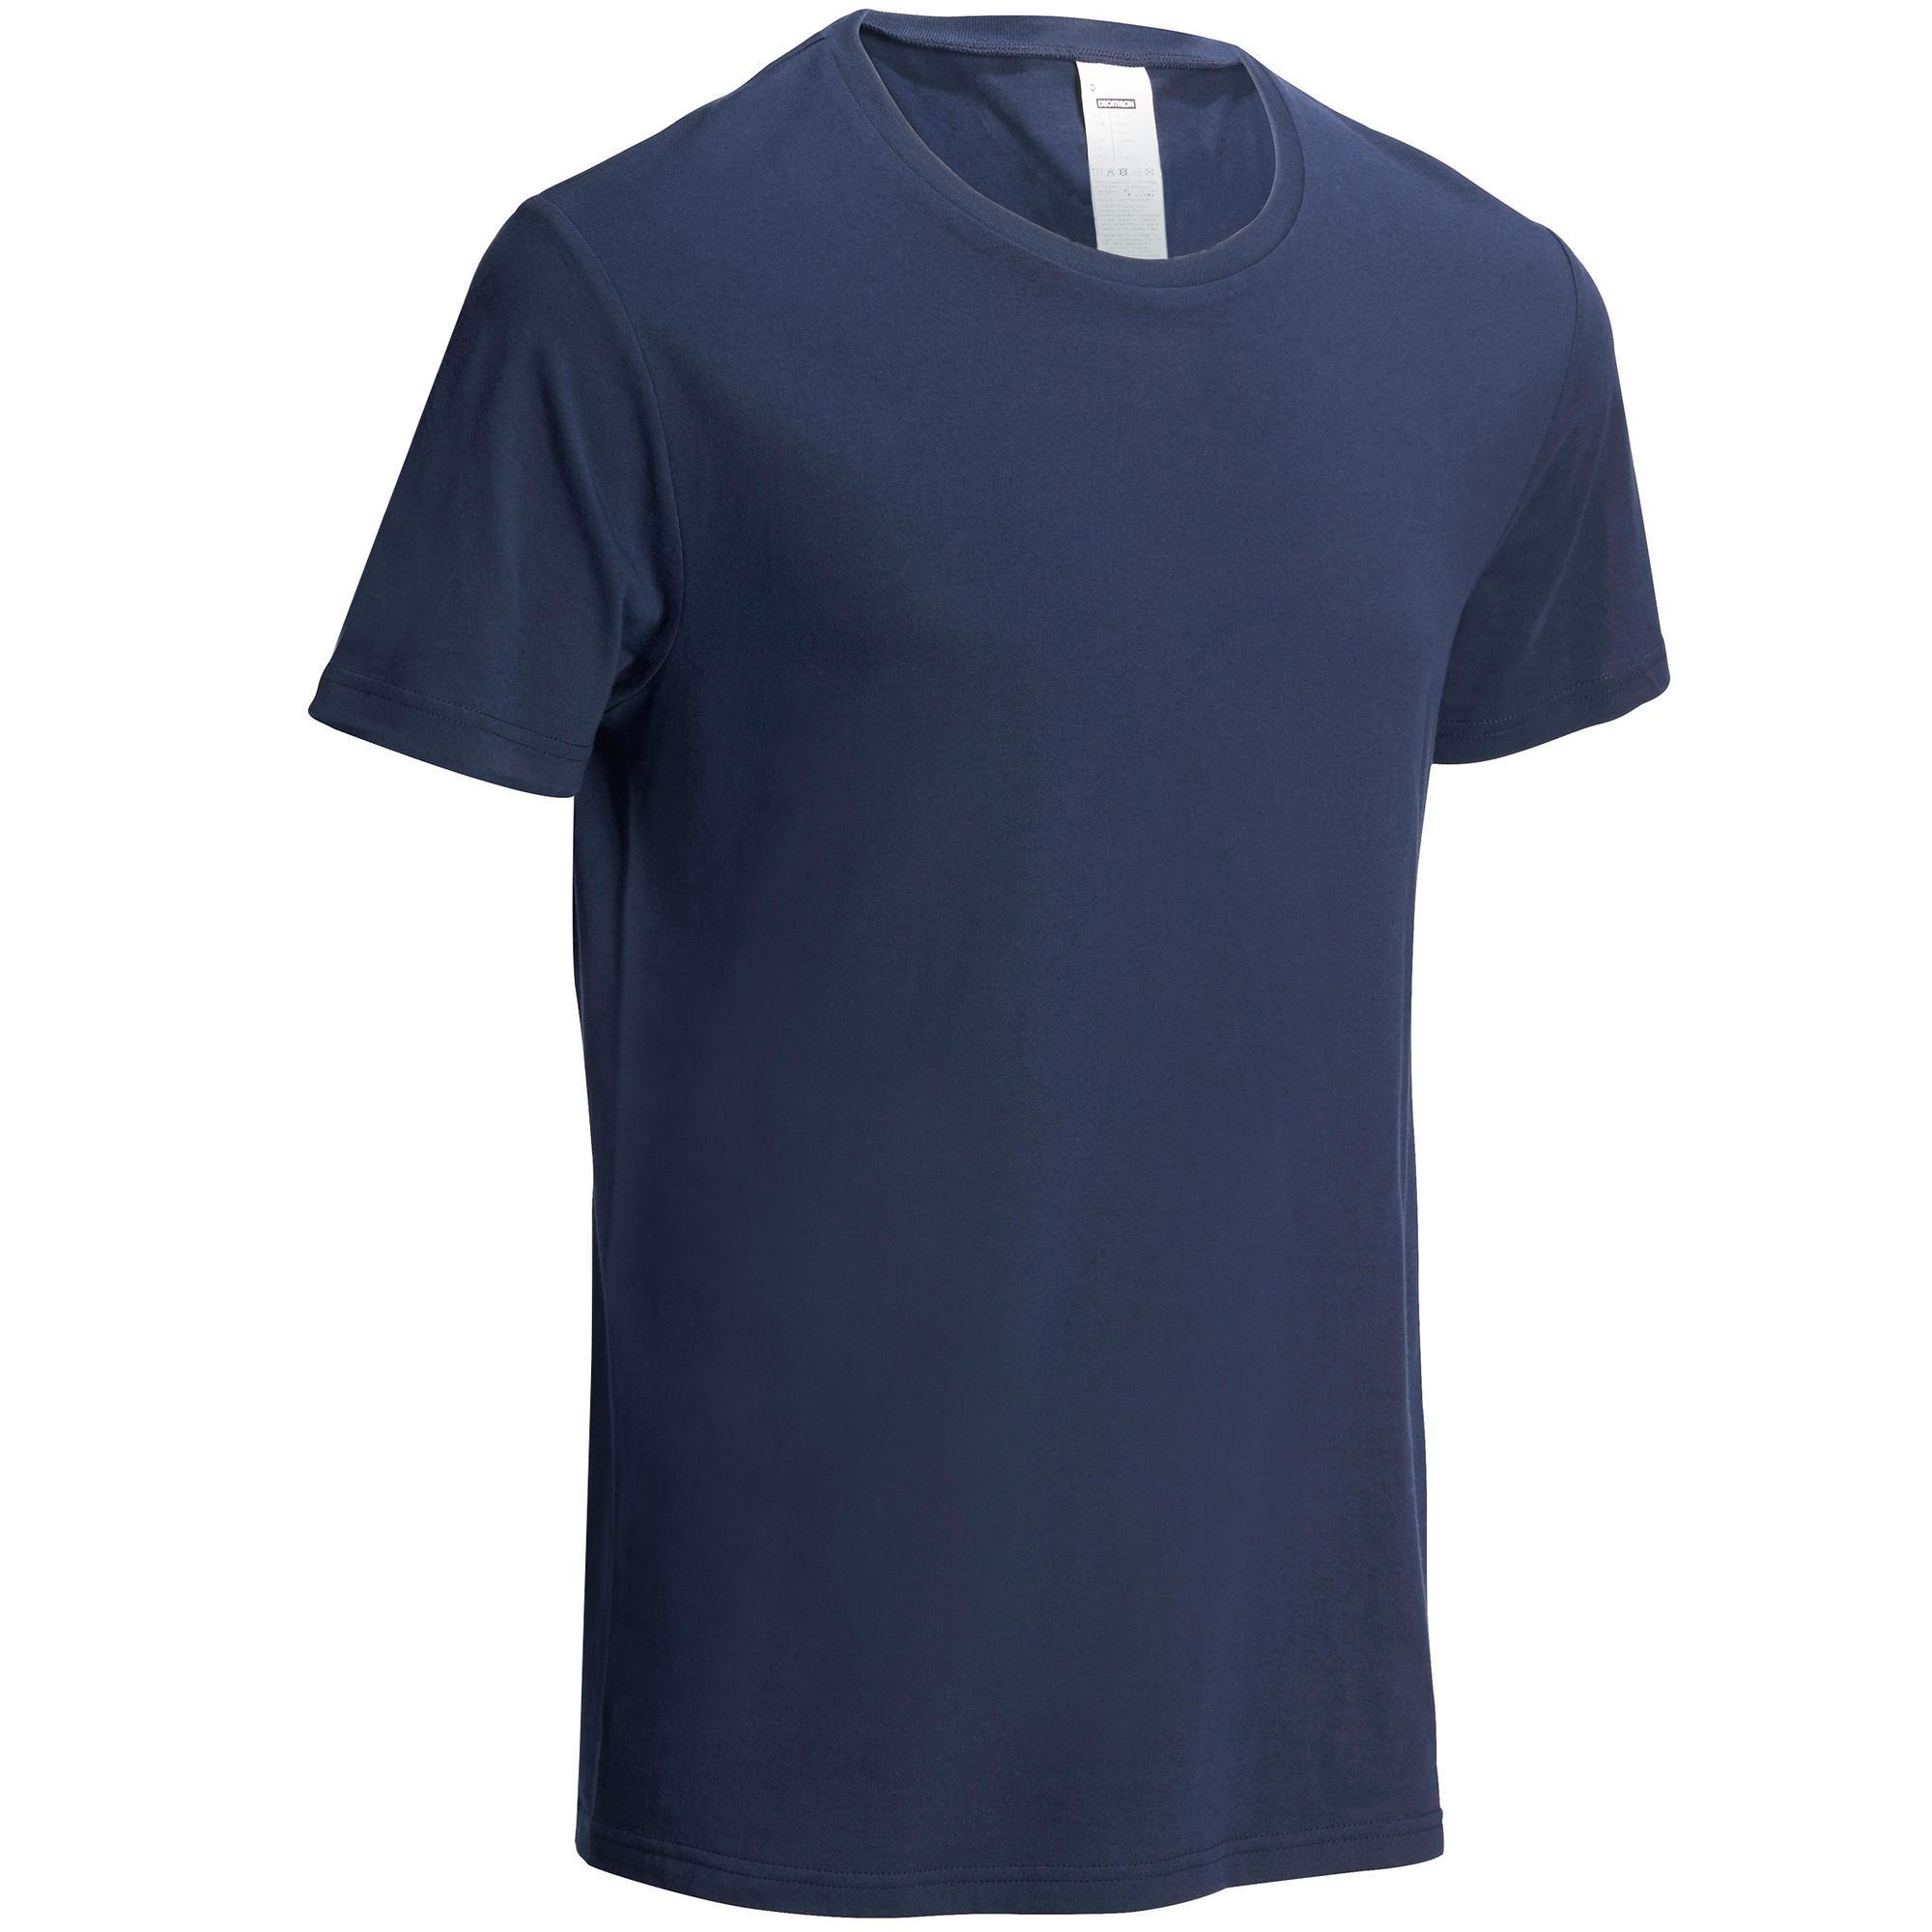 Domyos Heren T-shirt Sportee 100 voor gym en stretching regular fit 100% katoen